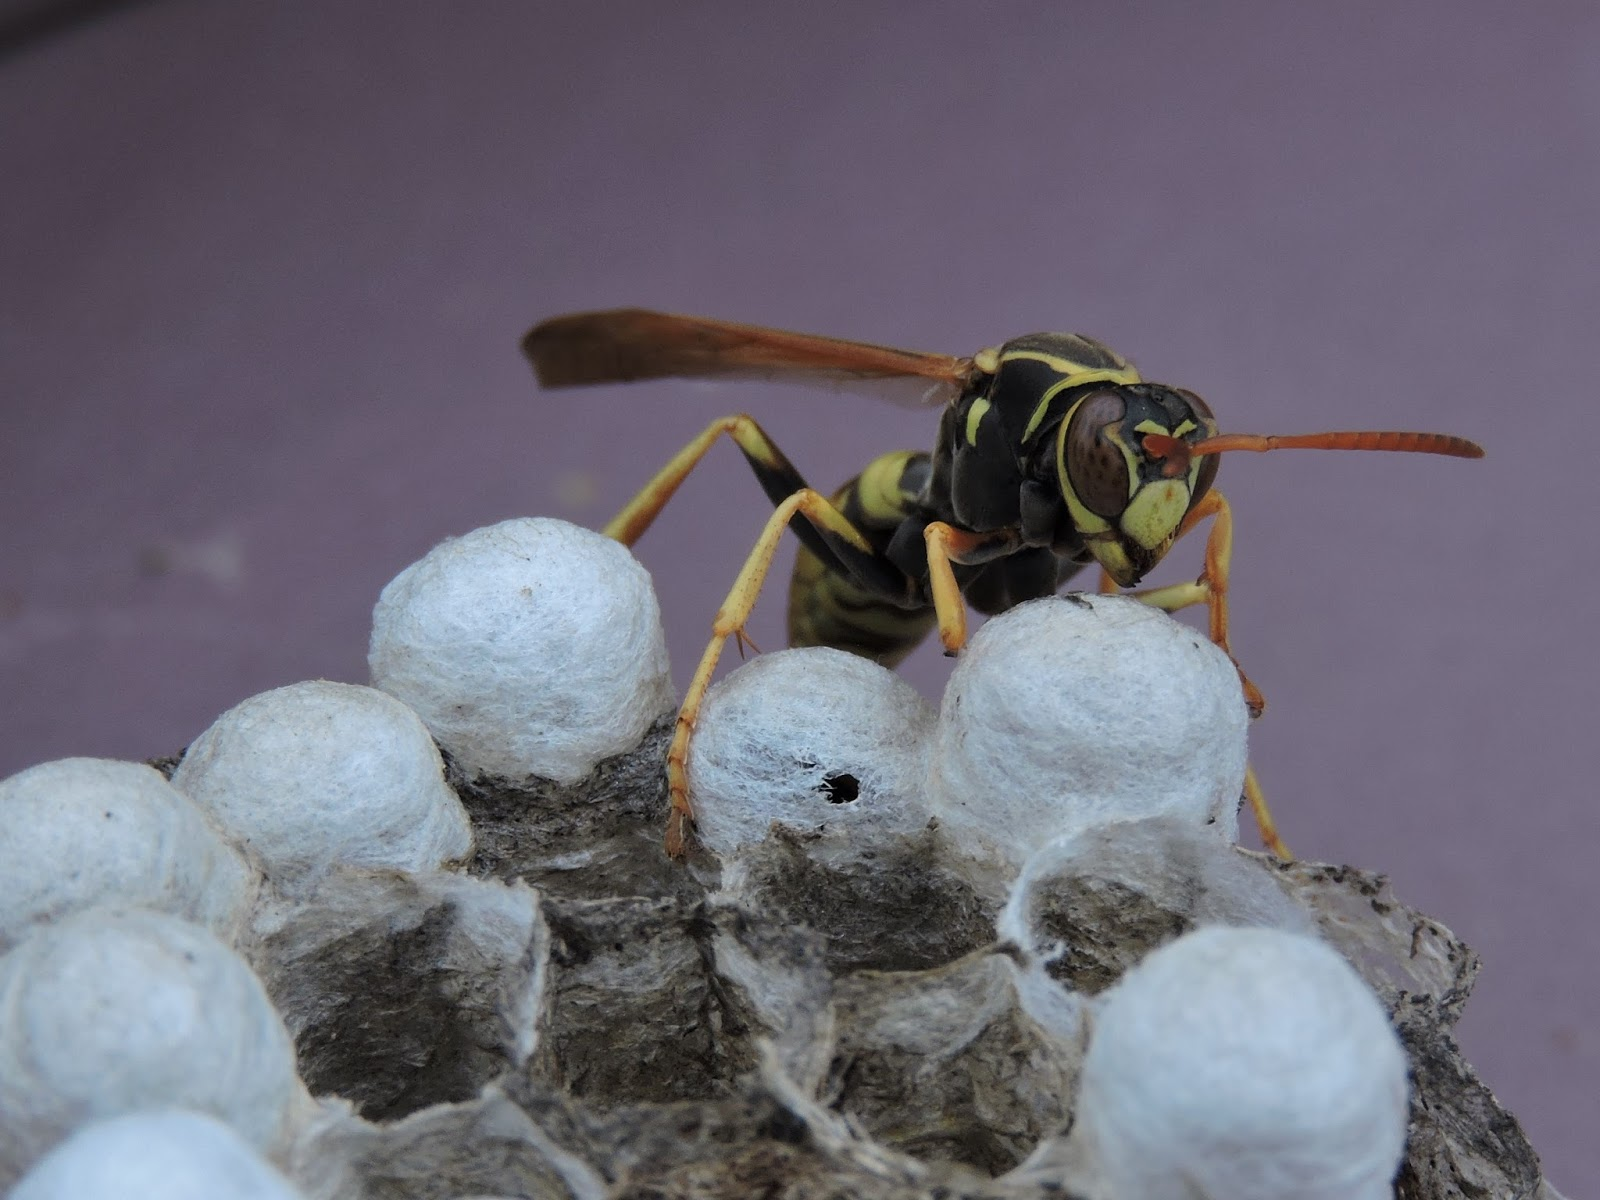 hight resolution of polistes aurifer a docile paper wasp which forms small nests